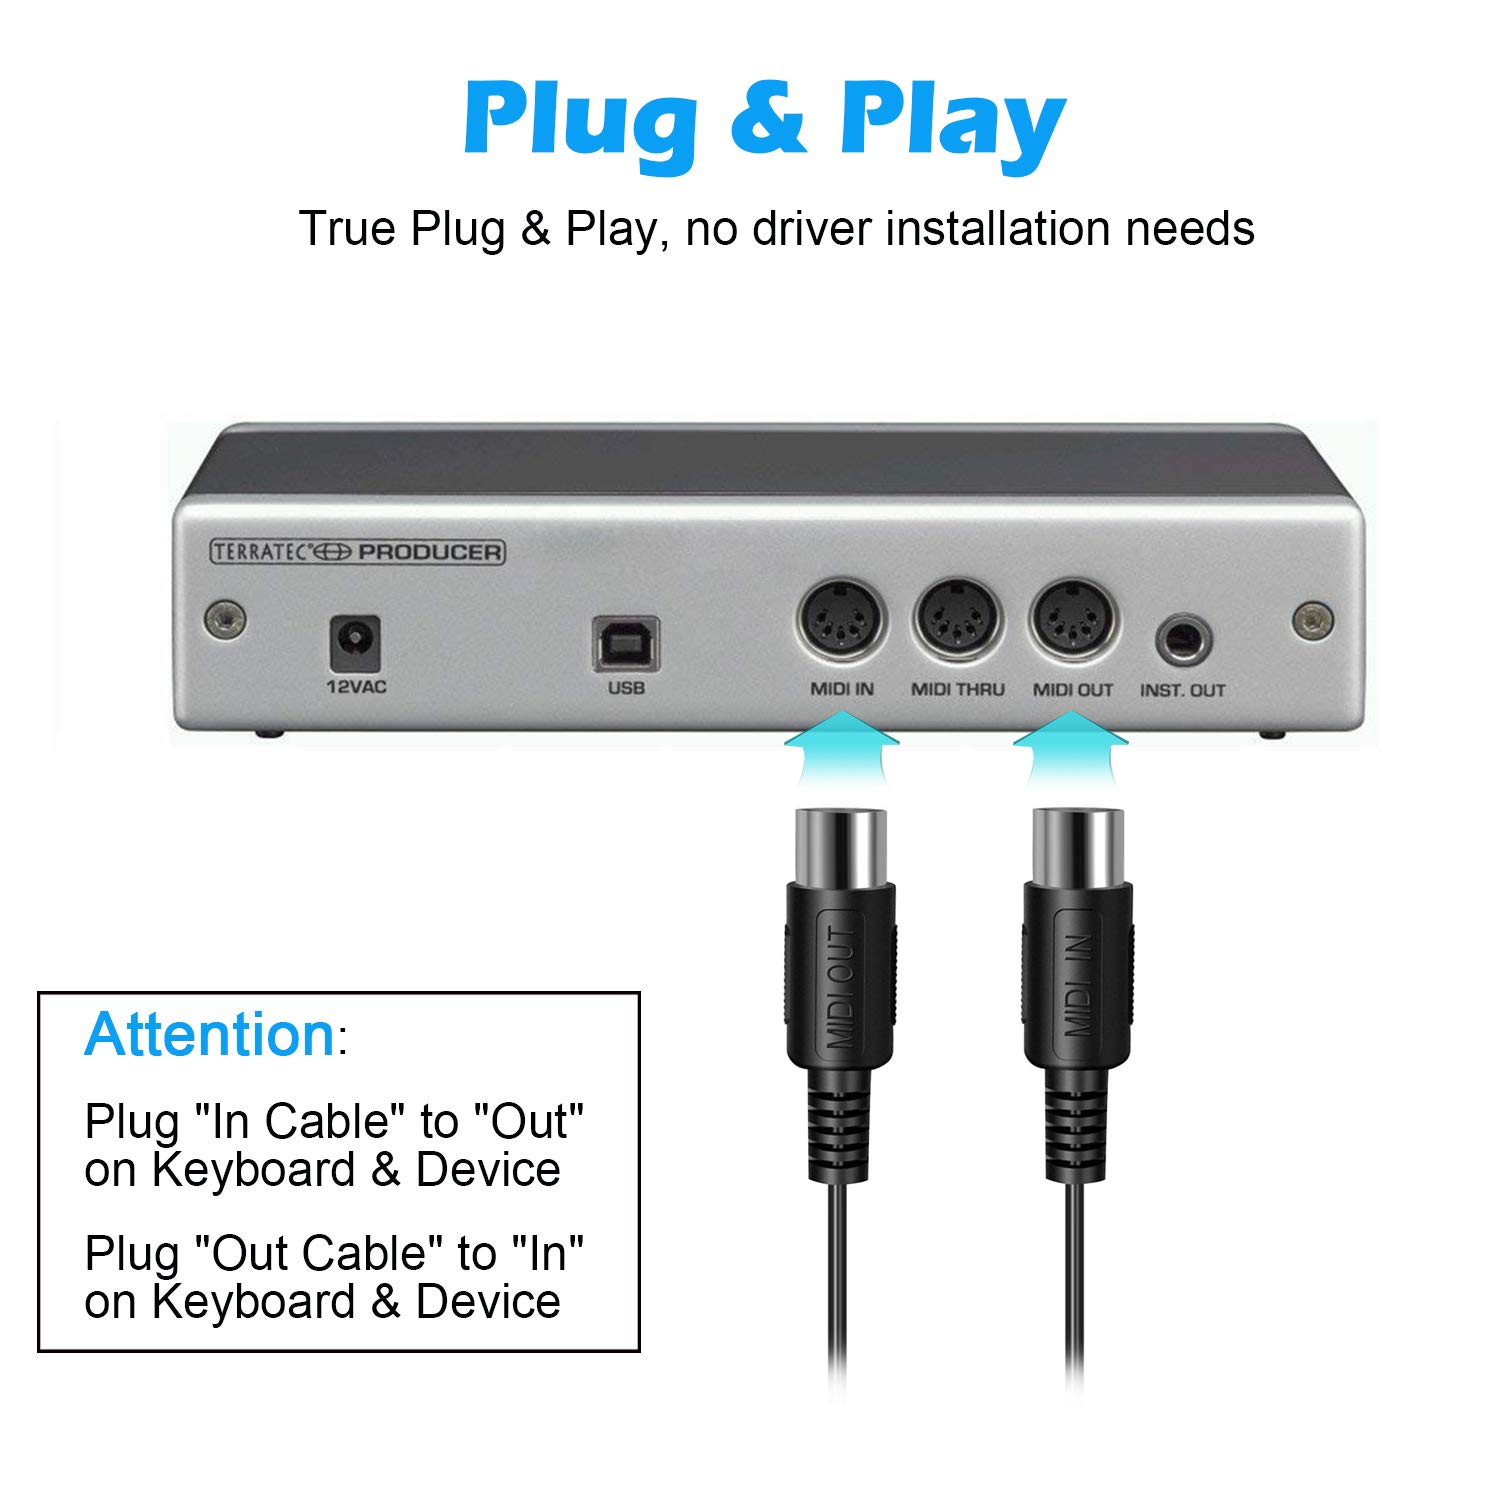 WADEO MIDI Kabel Cable MIDI Cable Converter USB to 2 MIDI ... on usb 2 vs usb 3, usb tower, usb adapter, usb to micro usb, usb connector,